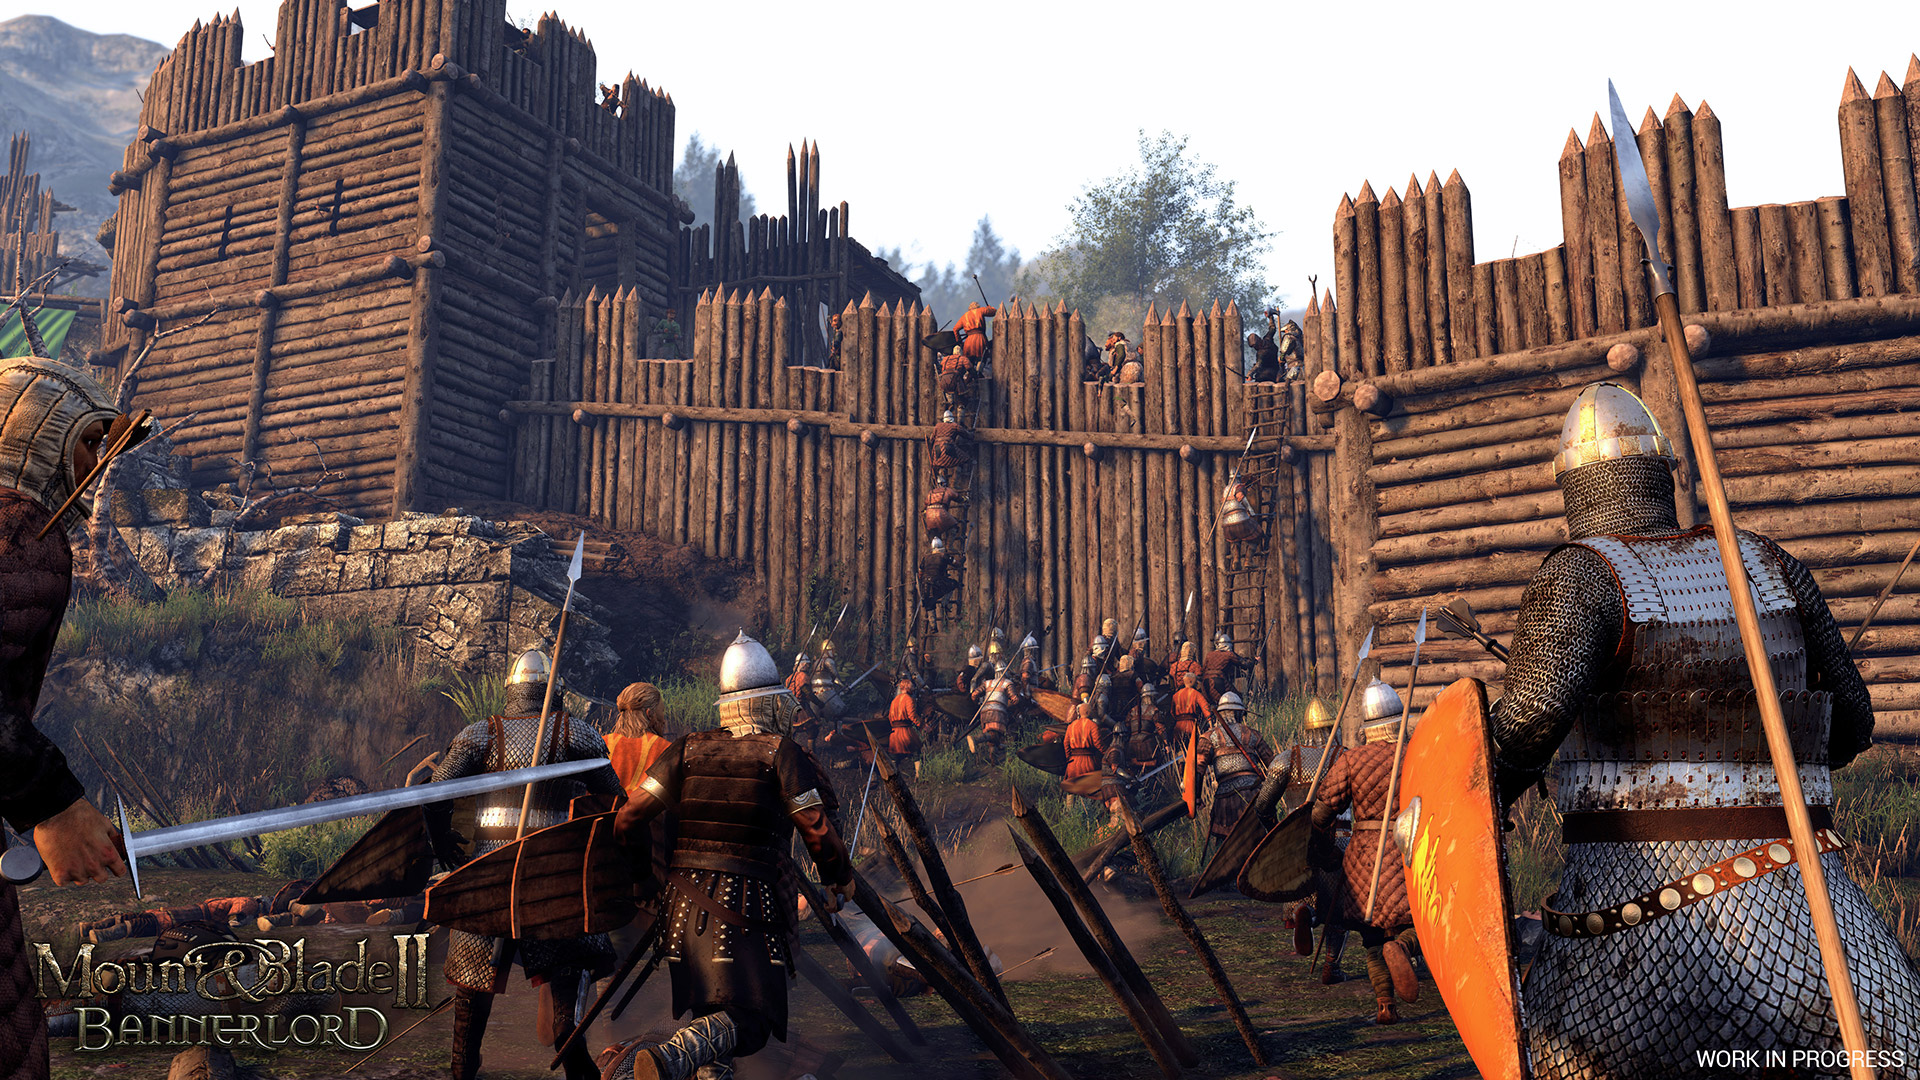 Mount & Blade II: Bannerlord has a March 2020 release in mind for Early Access screenshot